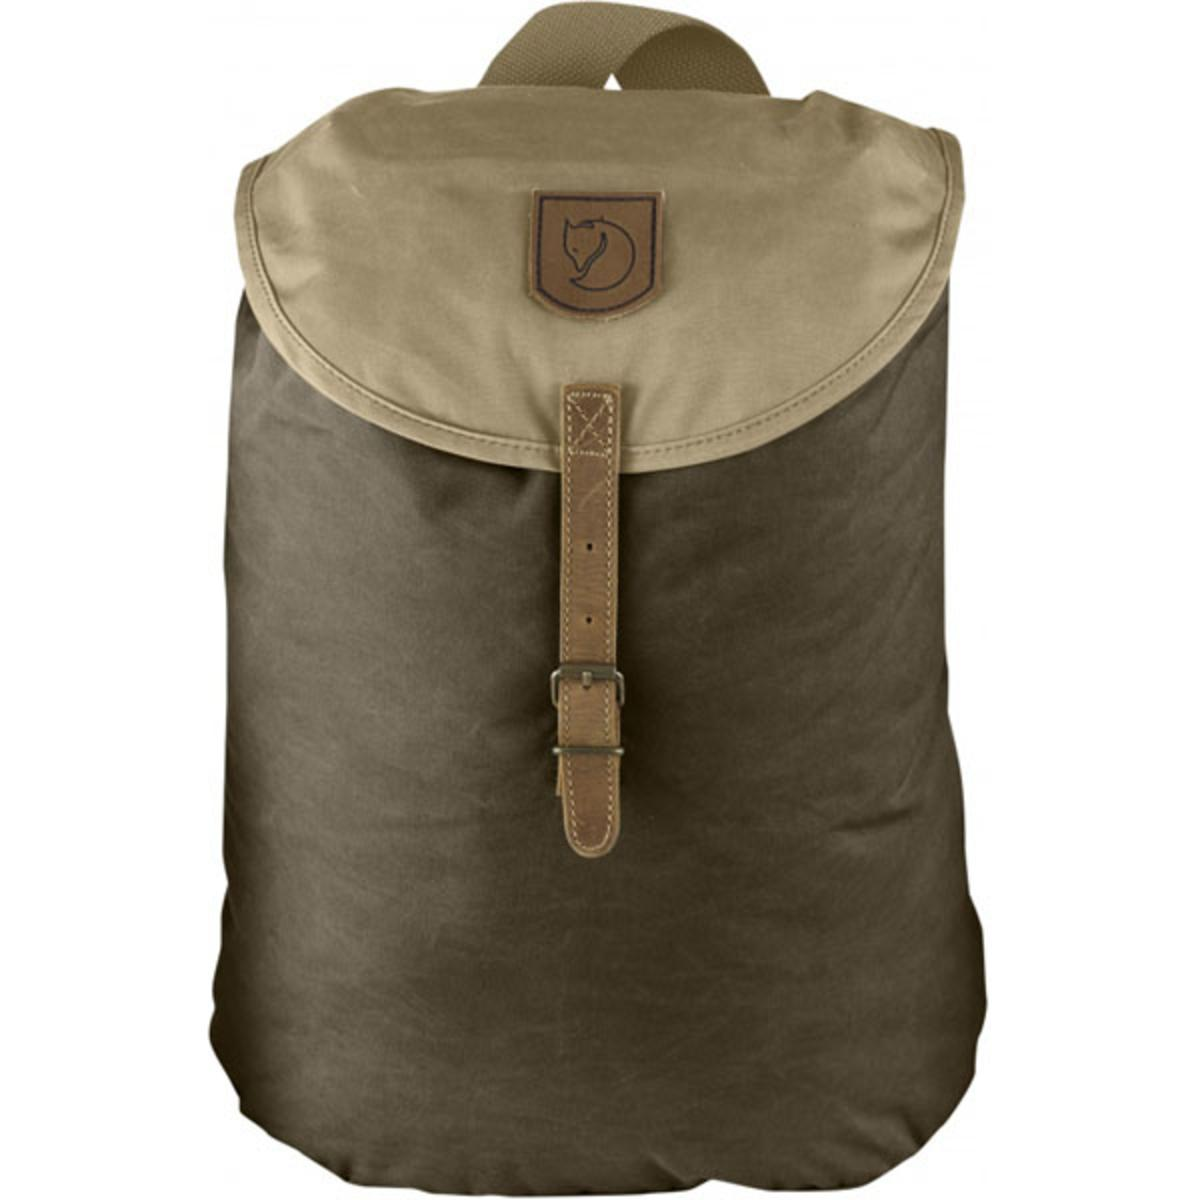 13a28cc1da4 FjallRaven Greenland Backpack Small - The Warming Store